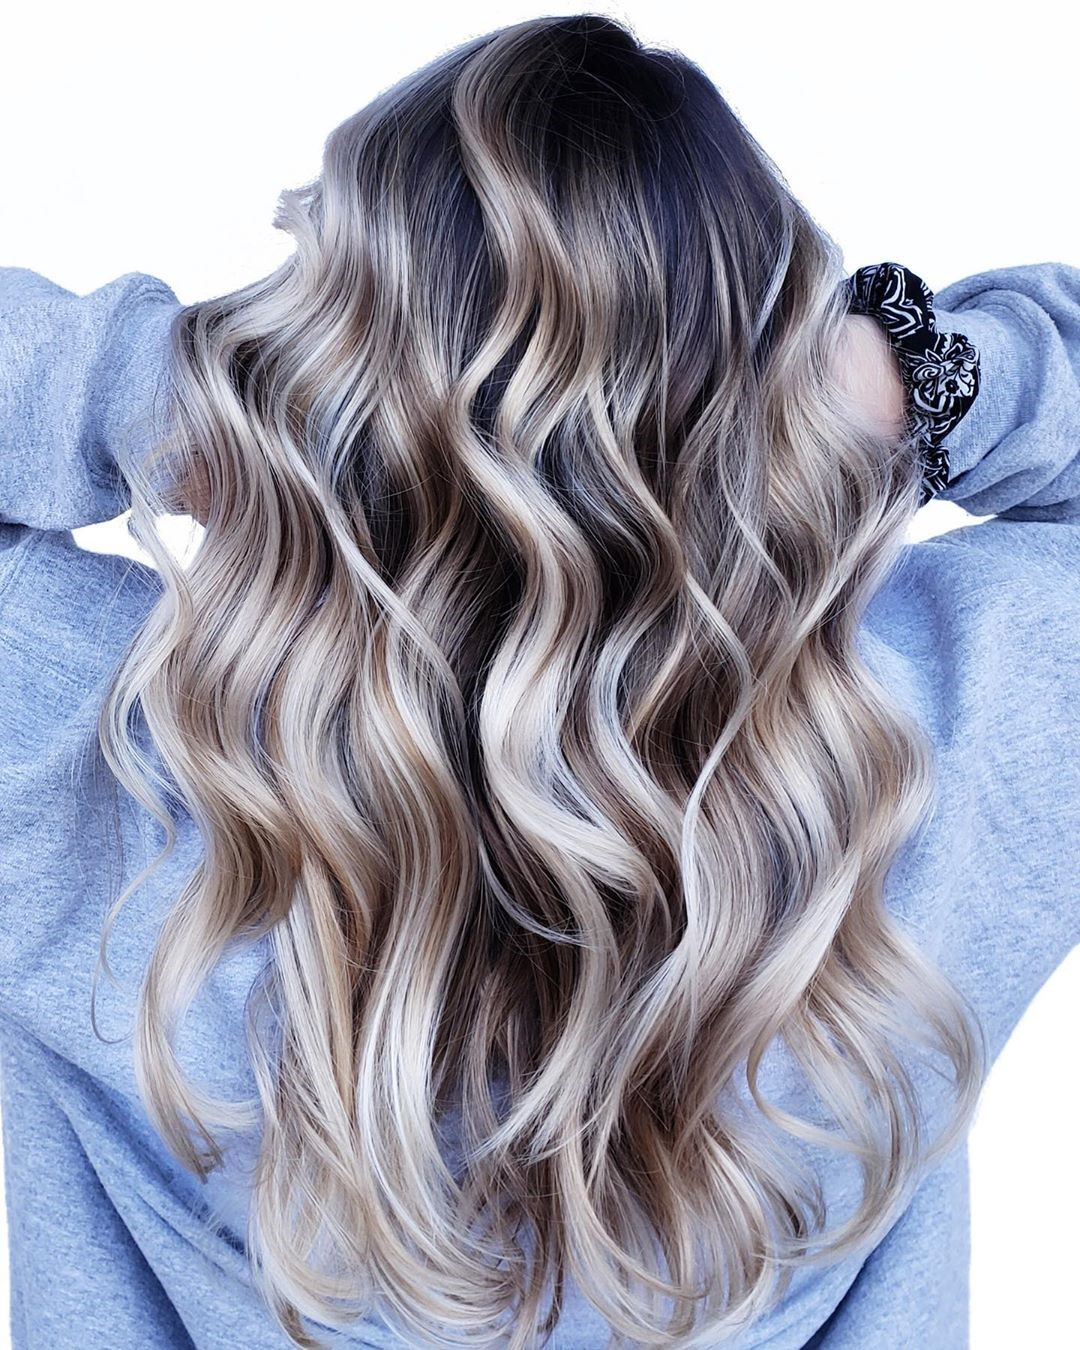 40 Bombshell Silver Hair Color Ideas For 2020 Hair Adviser